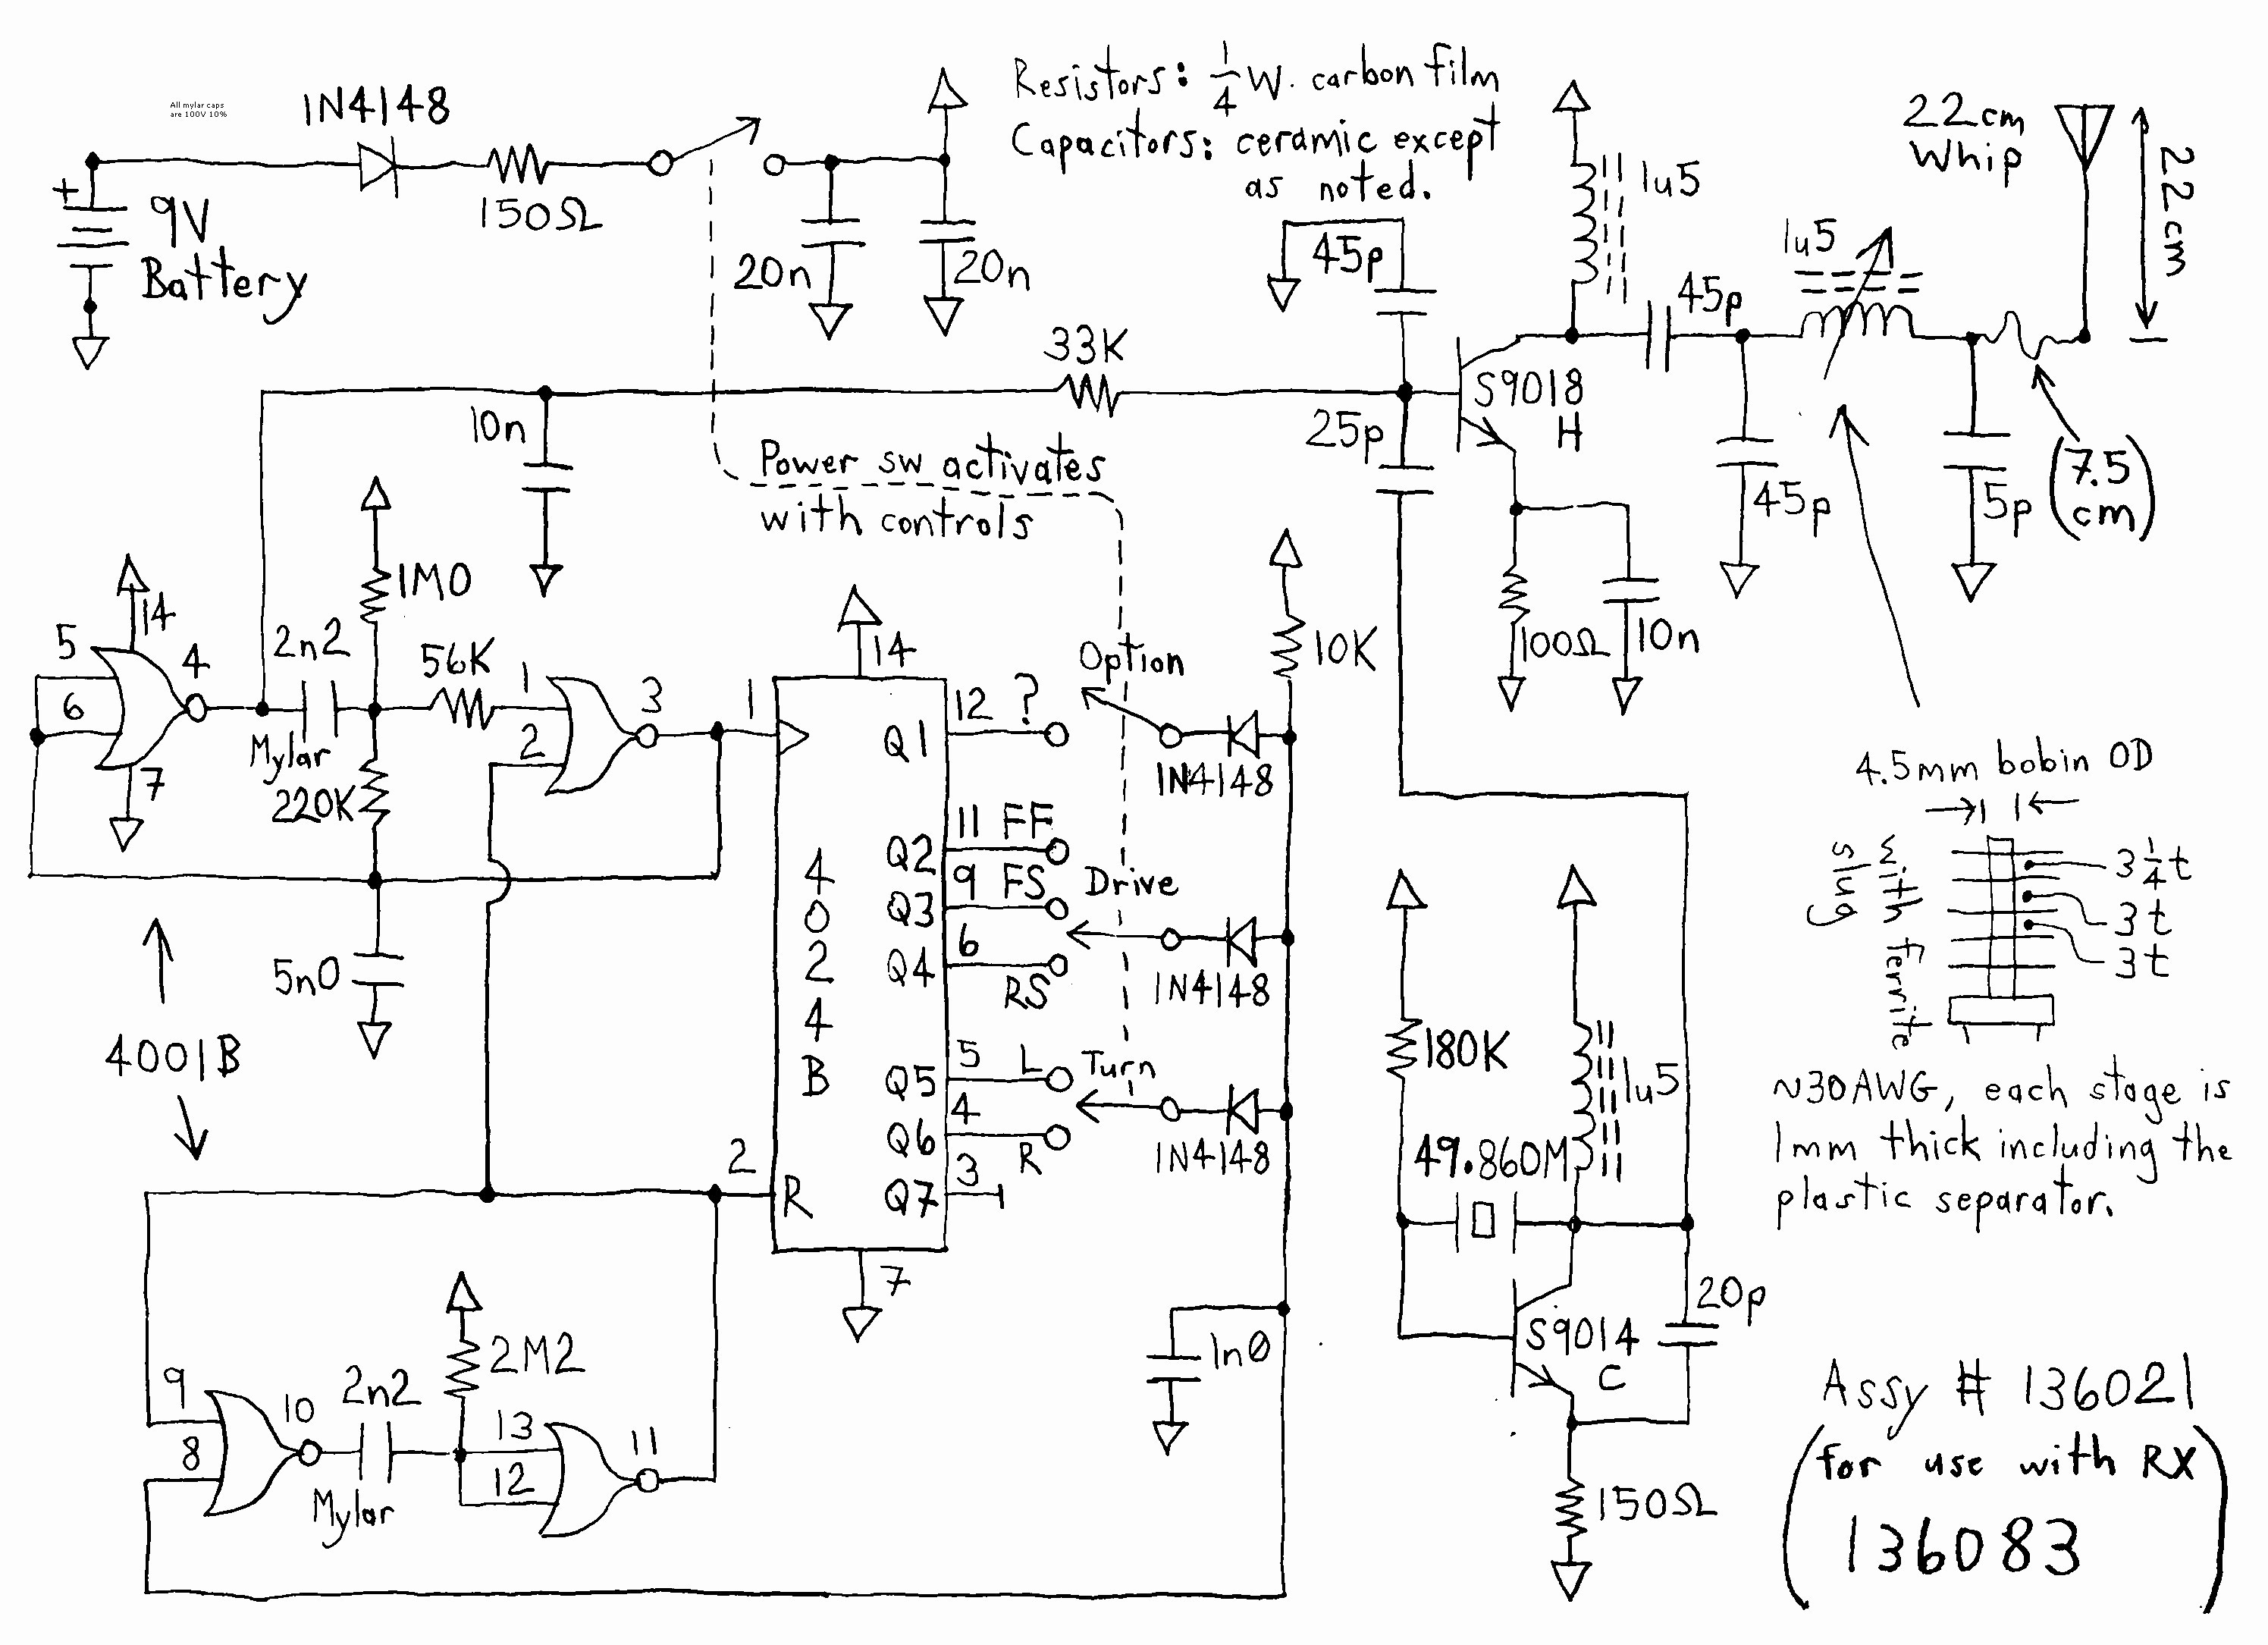 Remote Car Circuit Diagram Circuit Board Wiring Diagram for Rc Of Remote Car Circuit Diagram